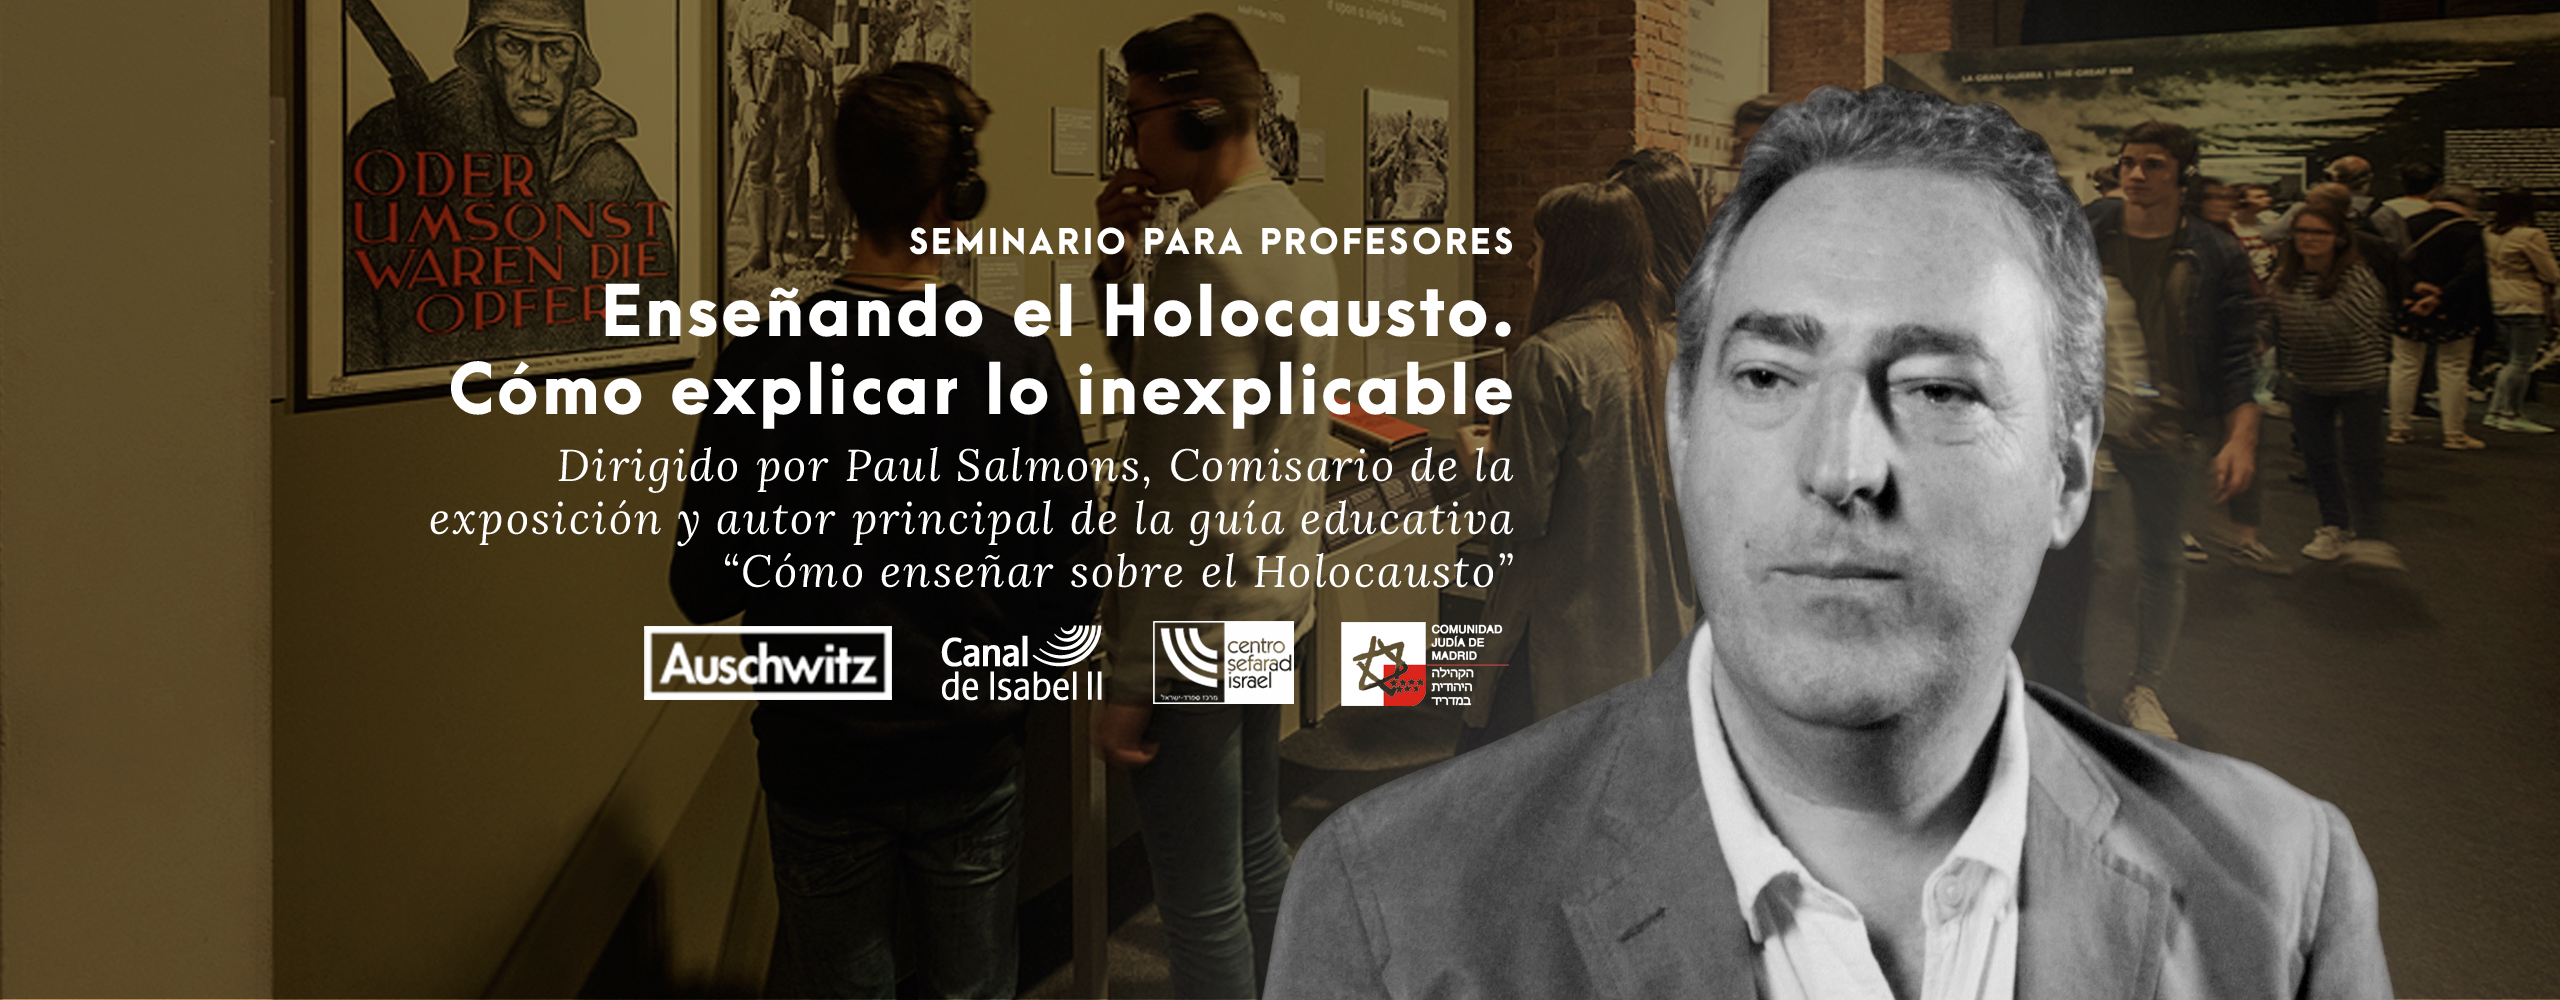 Auschwitz-Exhibition-Paul-Salmons-Enseñando-El-Holocausto